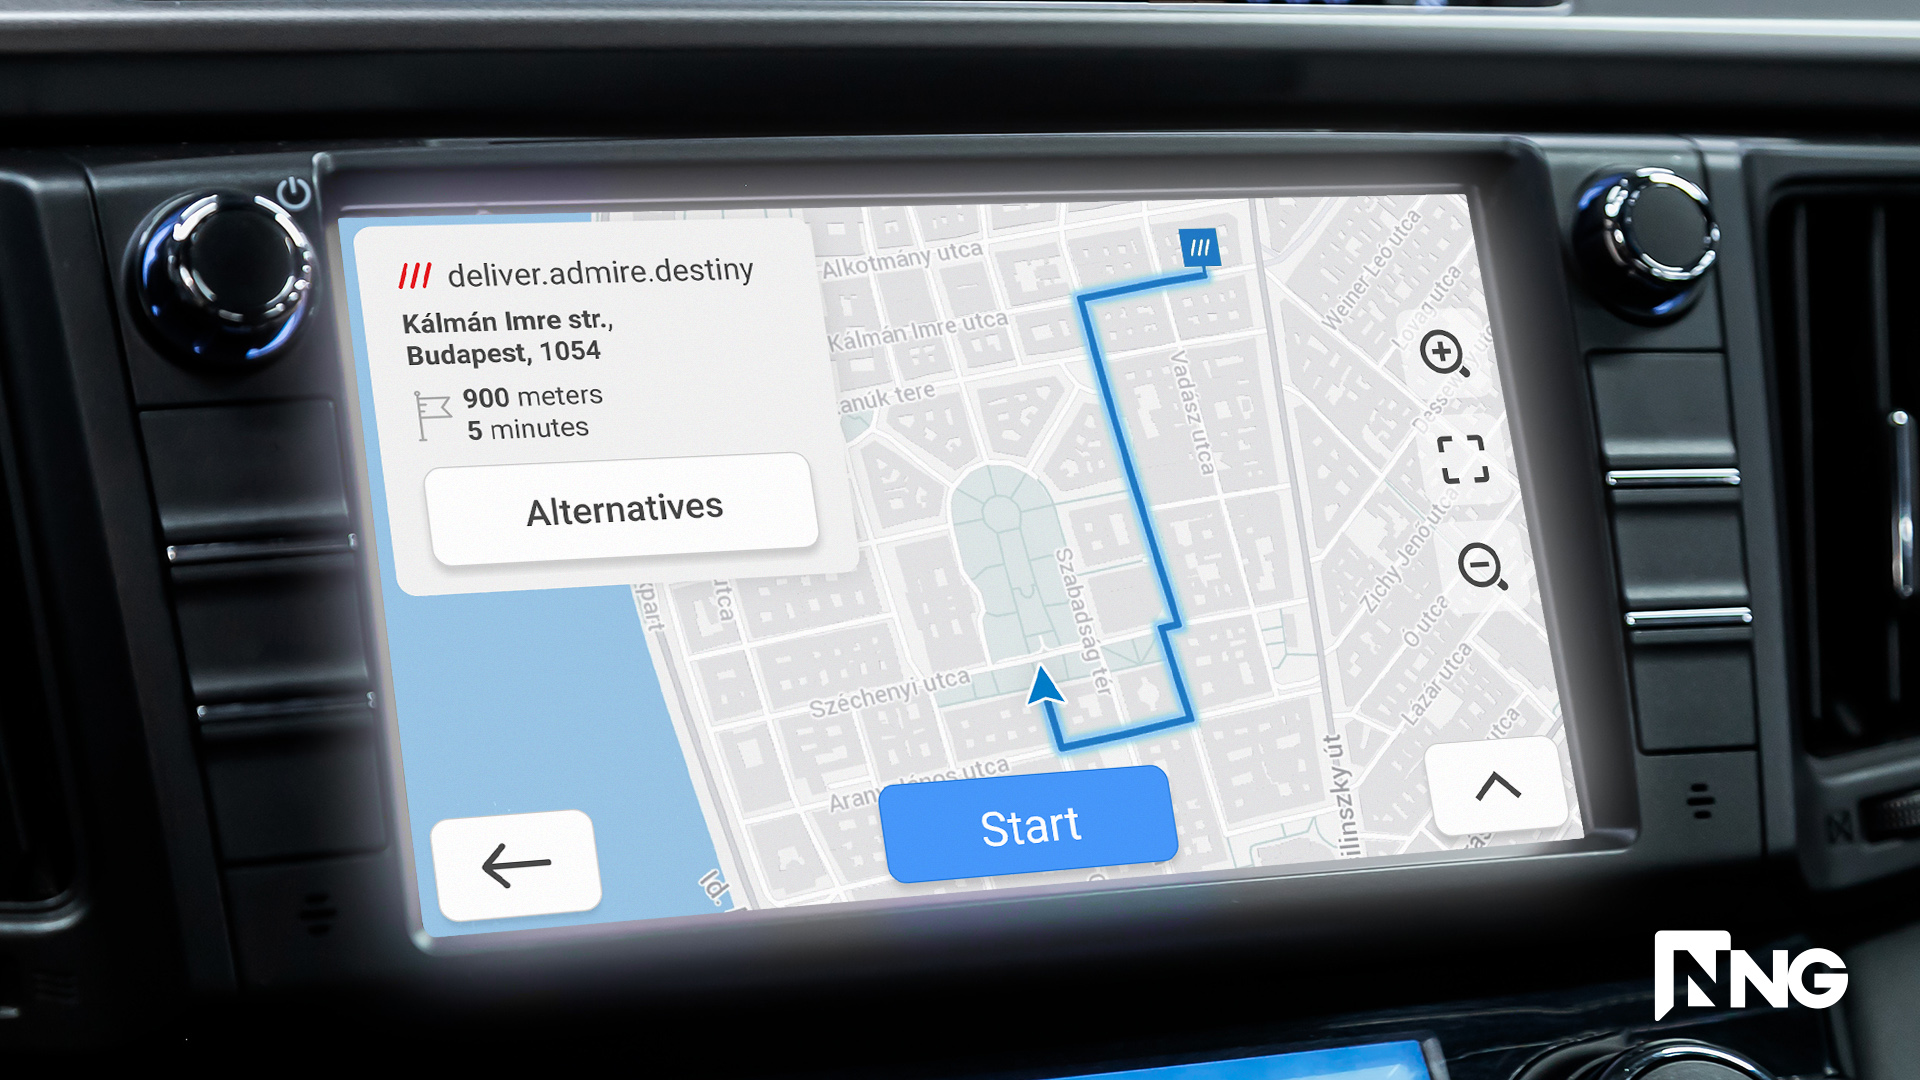 NNG head unit UI with what3words functionality